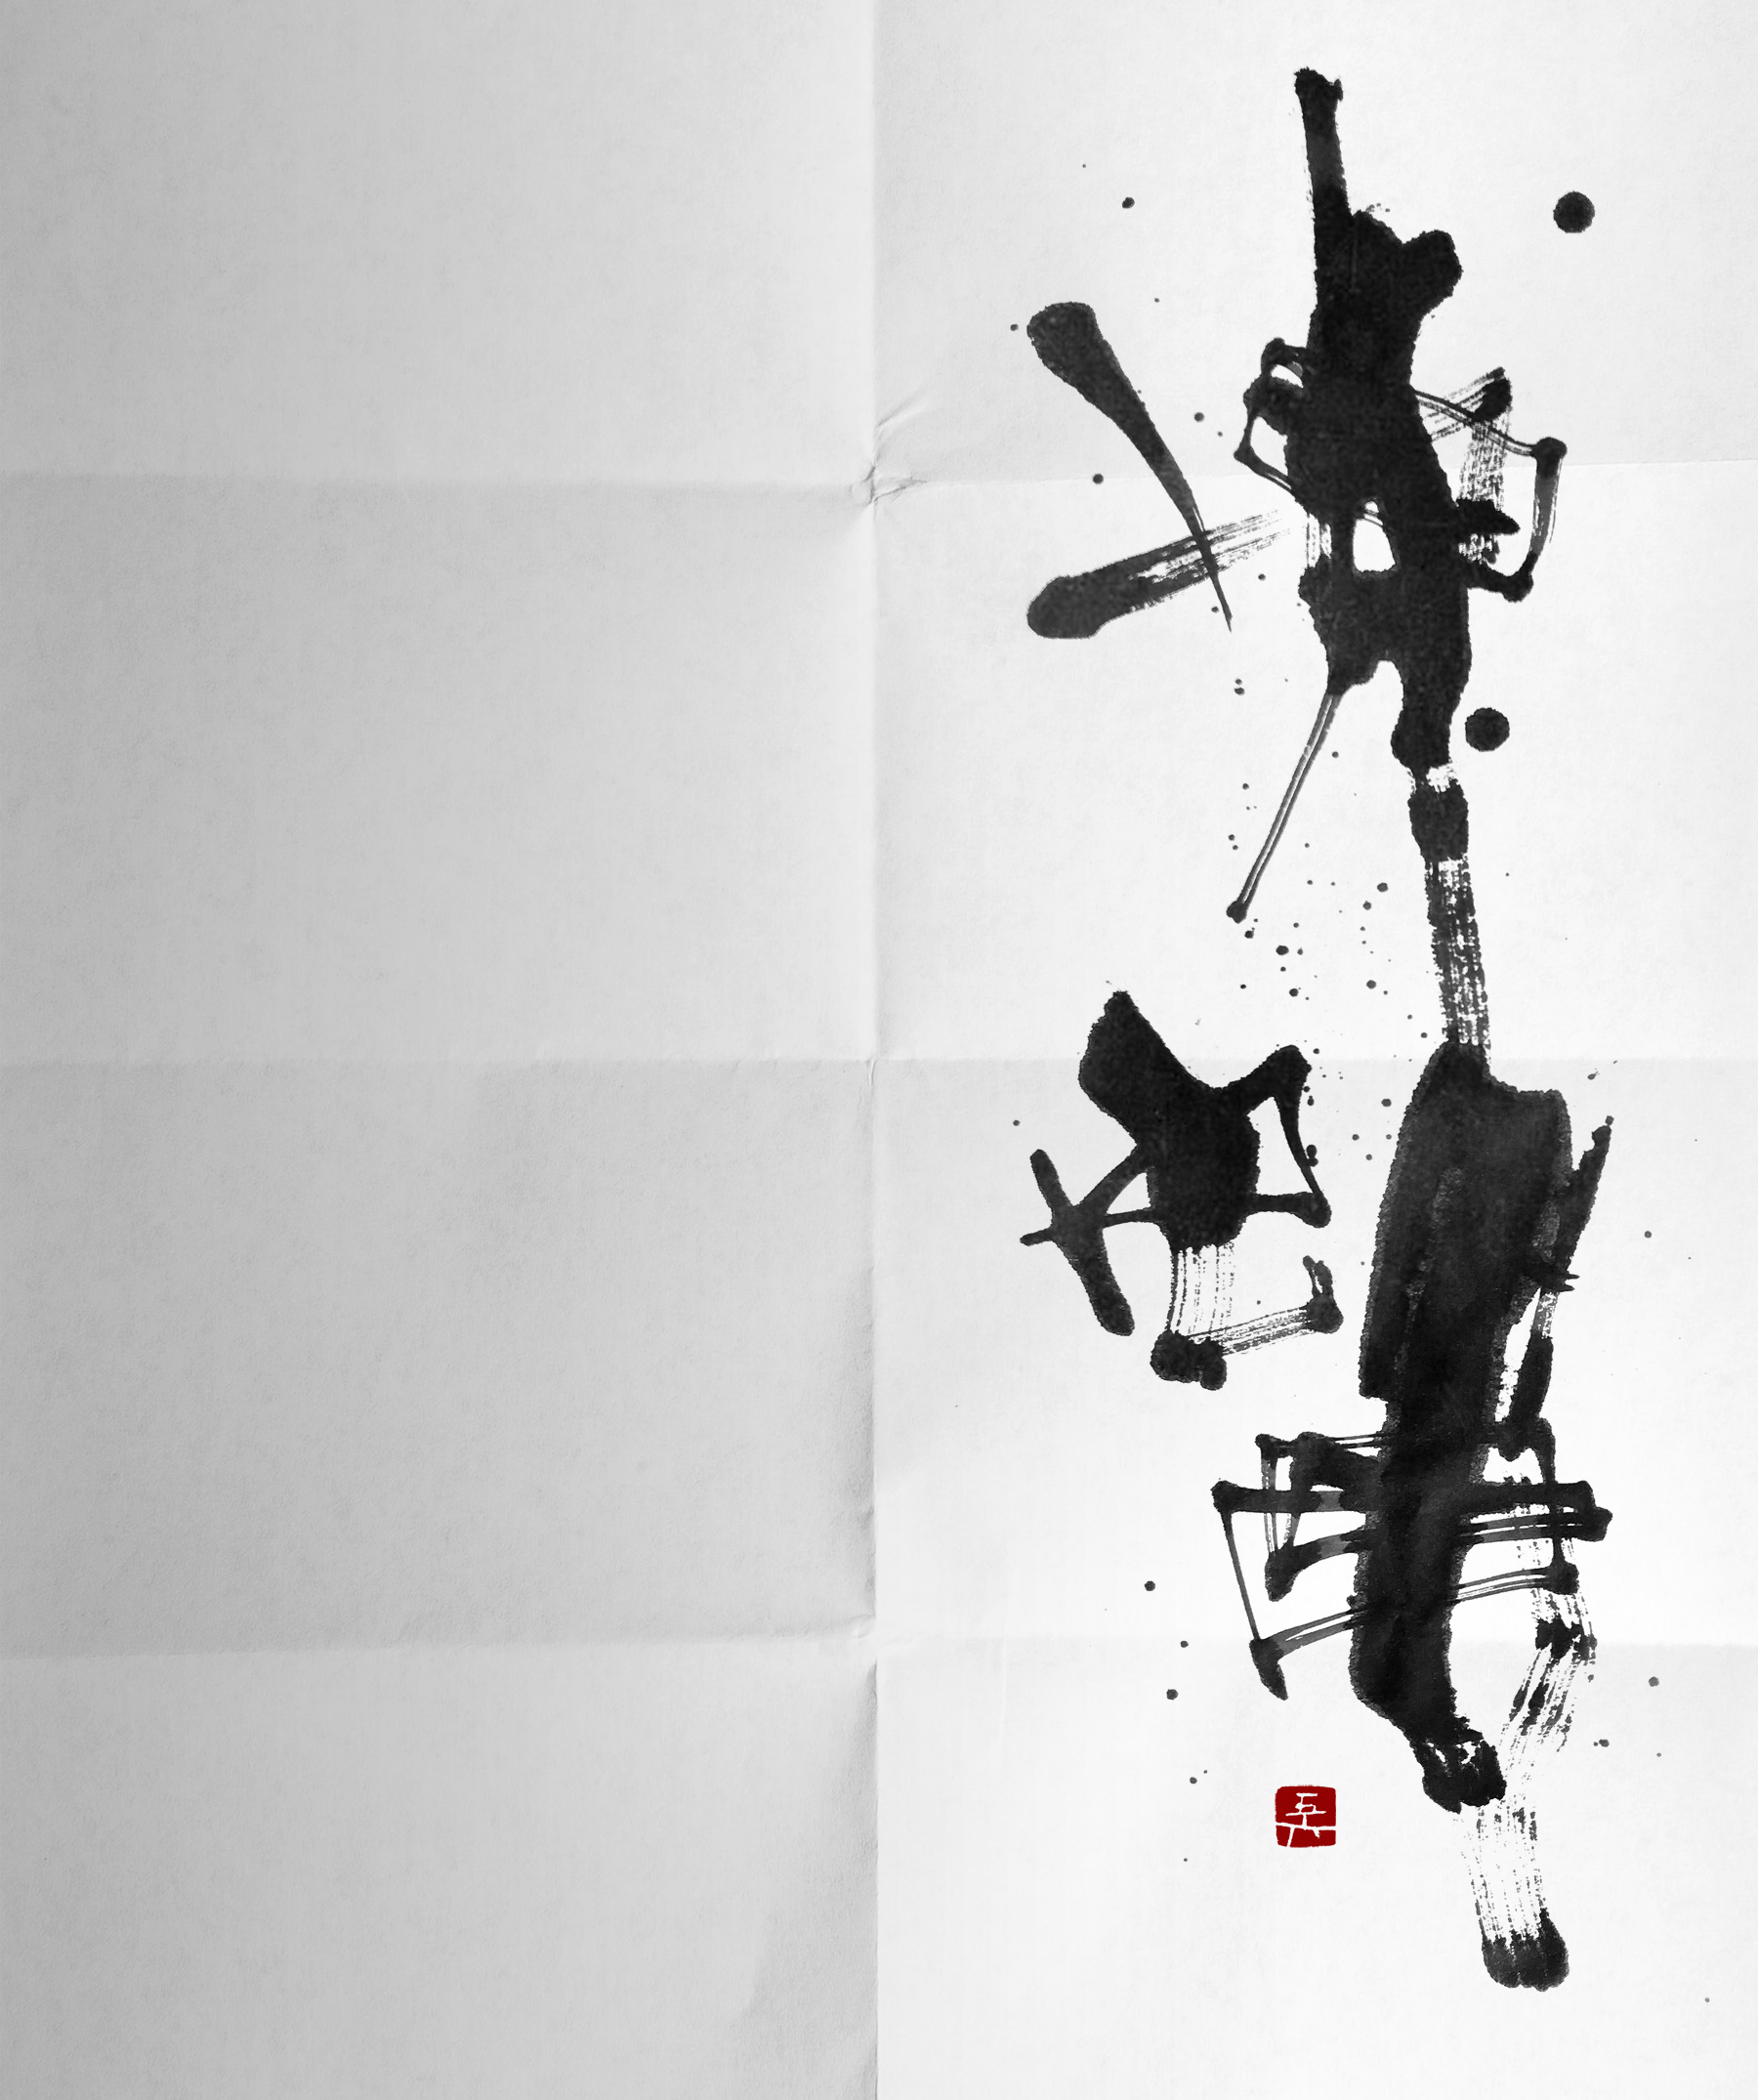 凍蝿 漢詩 書道作品 japaneseart japanesecalligraphy